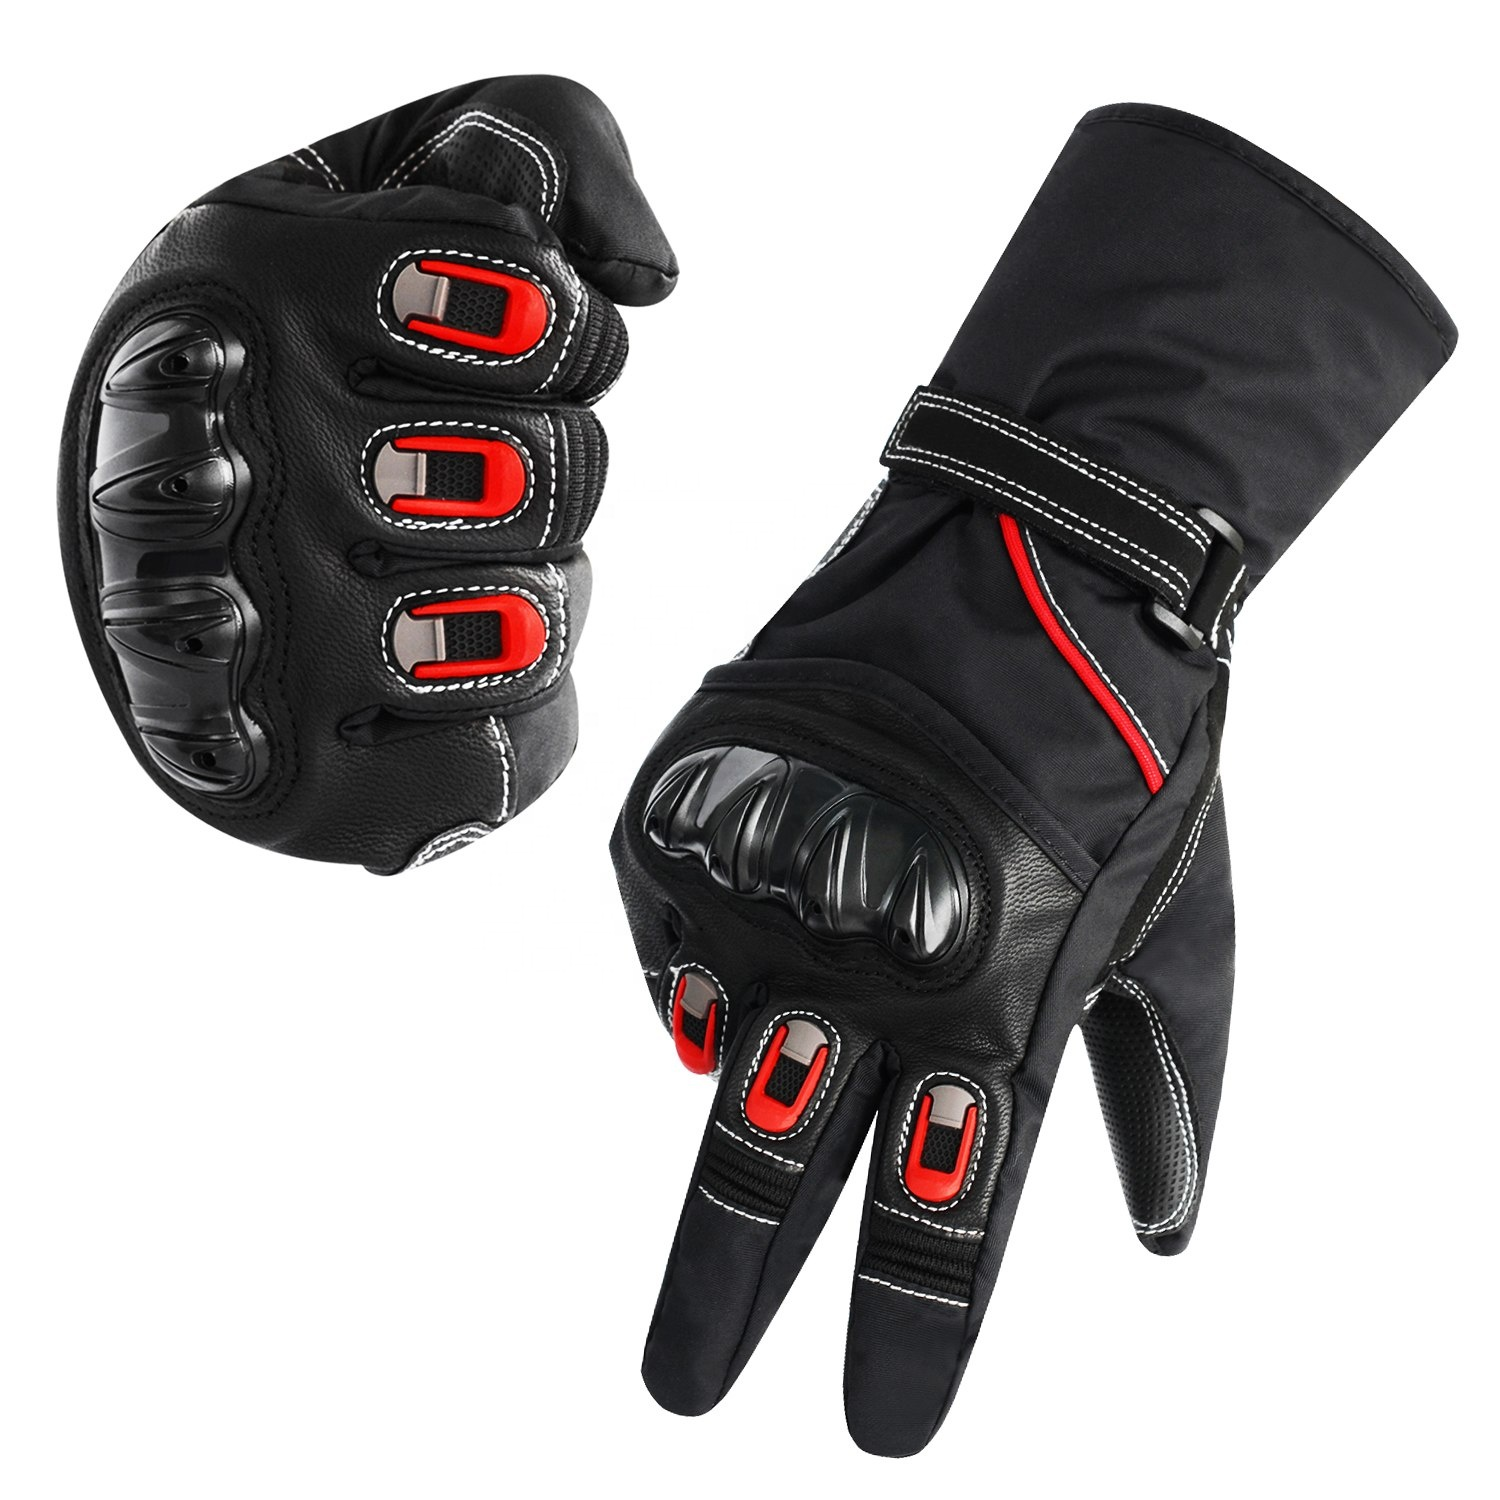 WUPP Winter 3M Thinsulate Motorcycle Racing Gloves Warm Windproof Waterproof Safety